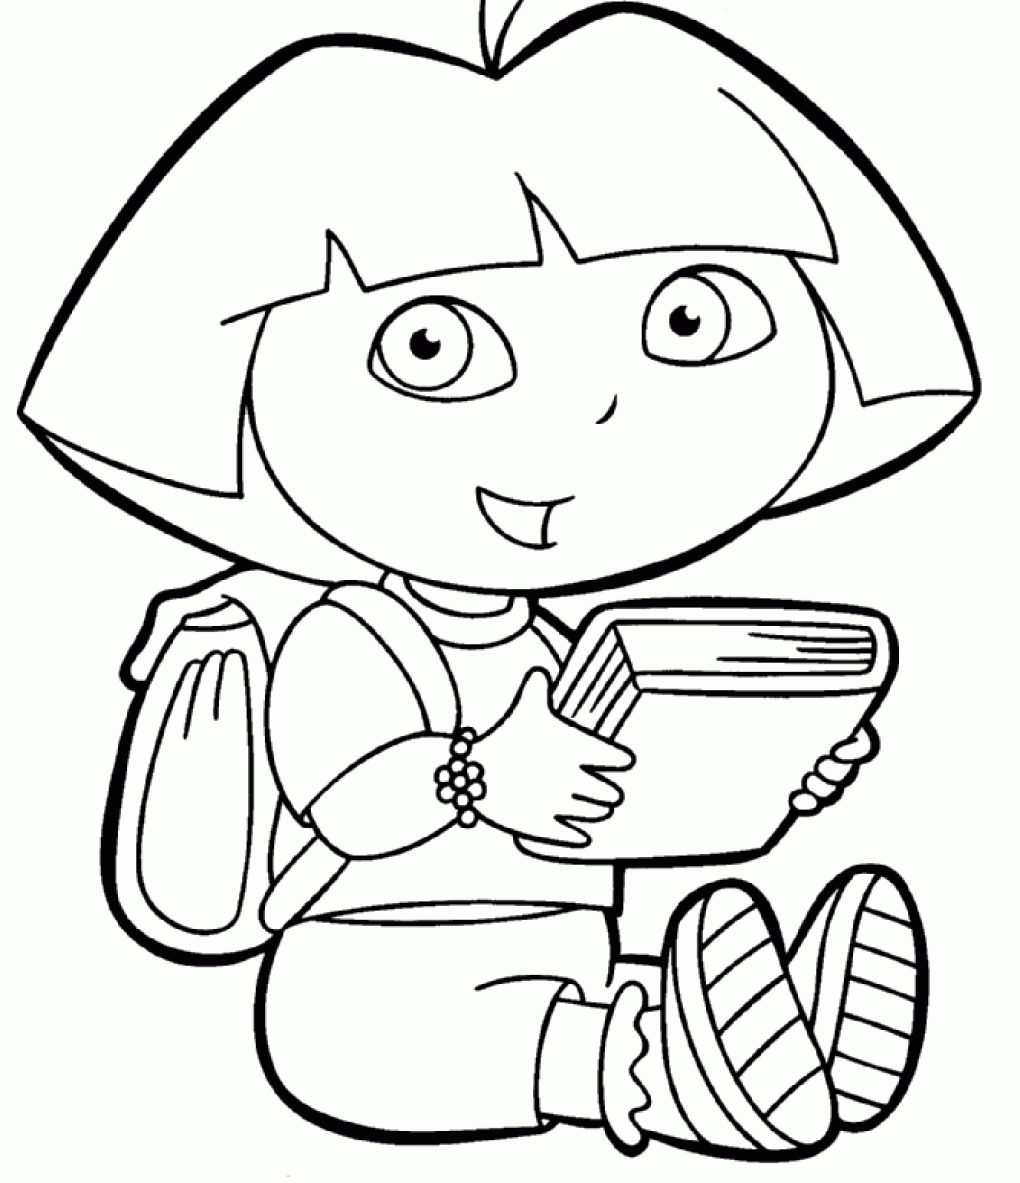 dora printables coloring dora the explorer boots coloring pages for kids halloween coloring dora printables